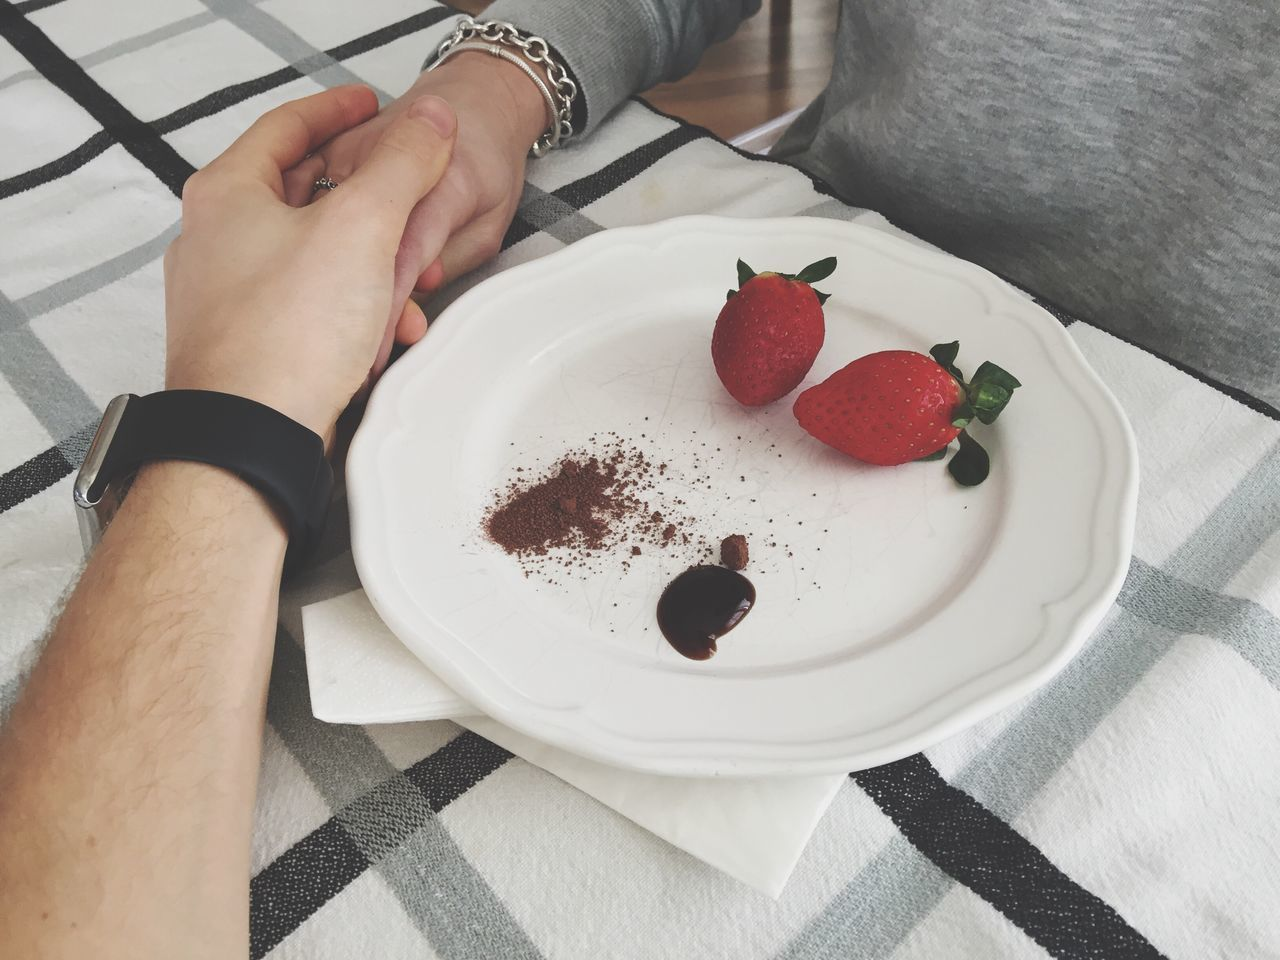 Love you Love Iloveyou Fragole Strawberry Dish Table Eating Acetobalsamico Italia Hand